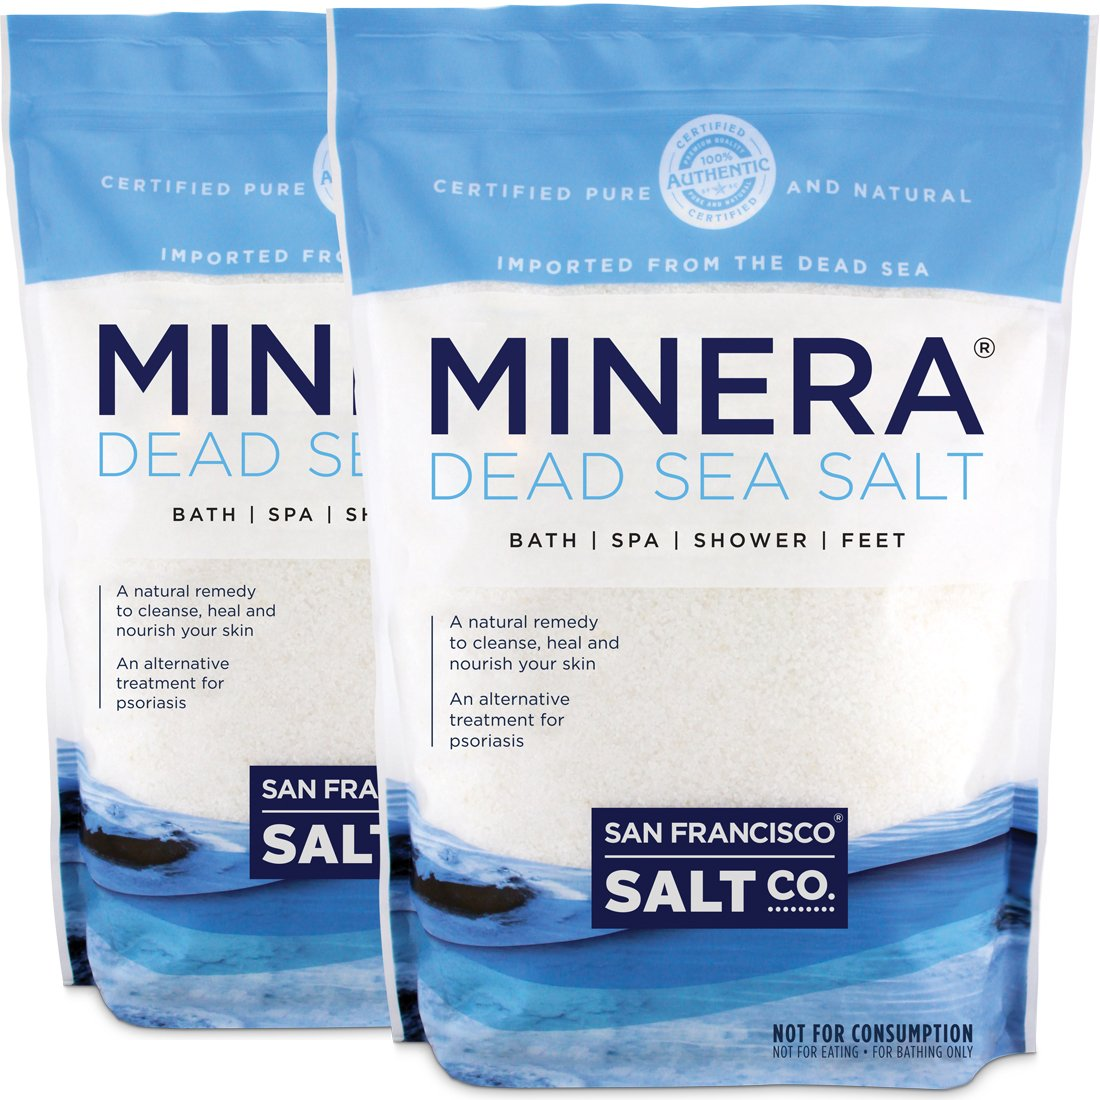 Minera Fine Grain Pure Dead Sea Salt, 10 lb (2 Pack - Each of